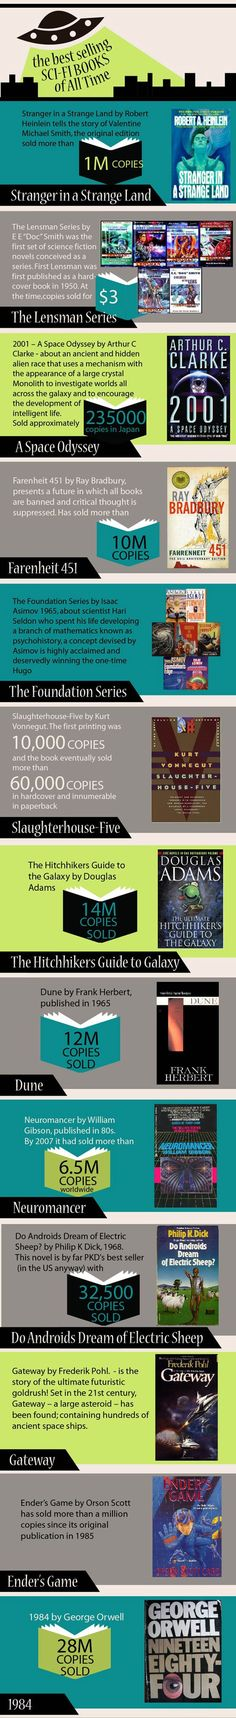 Best Selling Sci-Fi books of all time 01